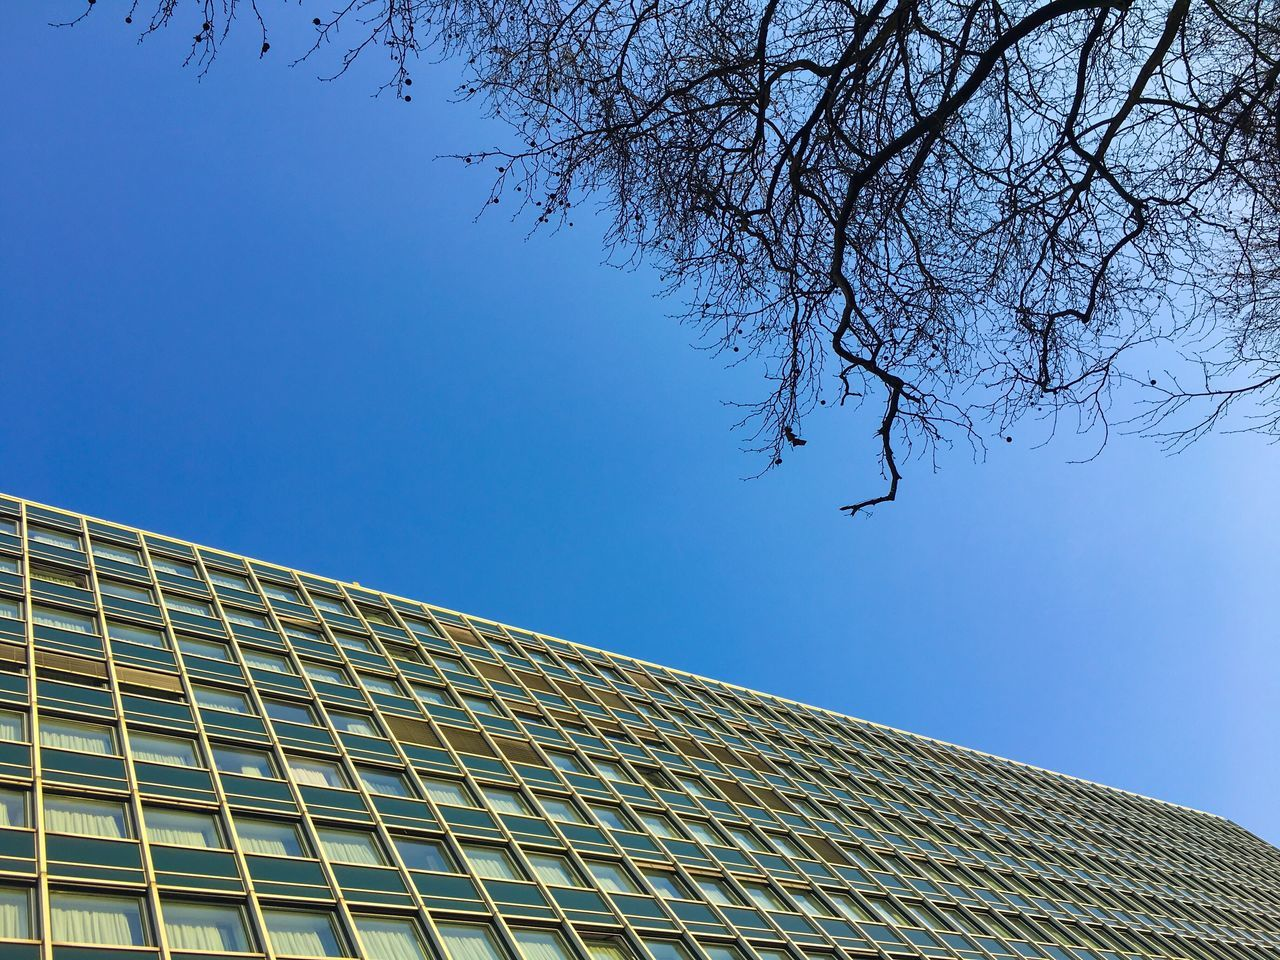 Building Exterior Built Structure Architecture Clear Sky Low Angle View Blue No People Tree Day Outdoors City Sky Pattern, Texture, Shape And Form Exceptional Photographs Eyeem Market Getting Inspired